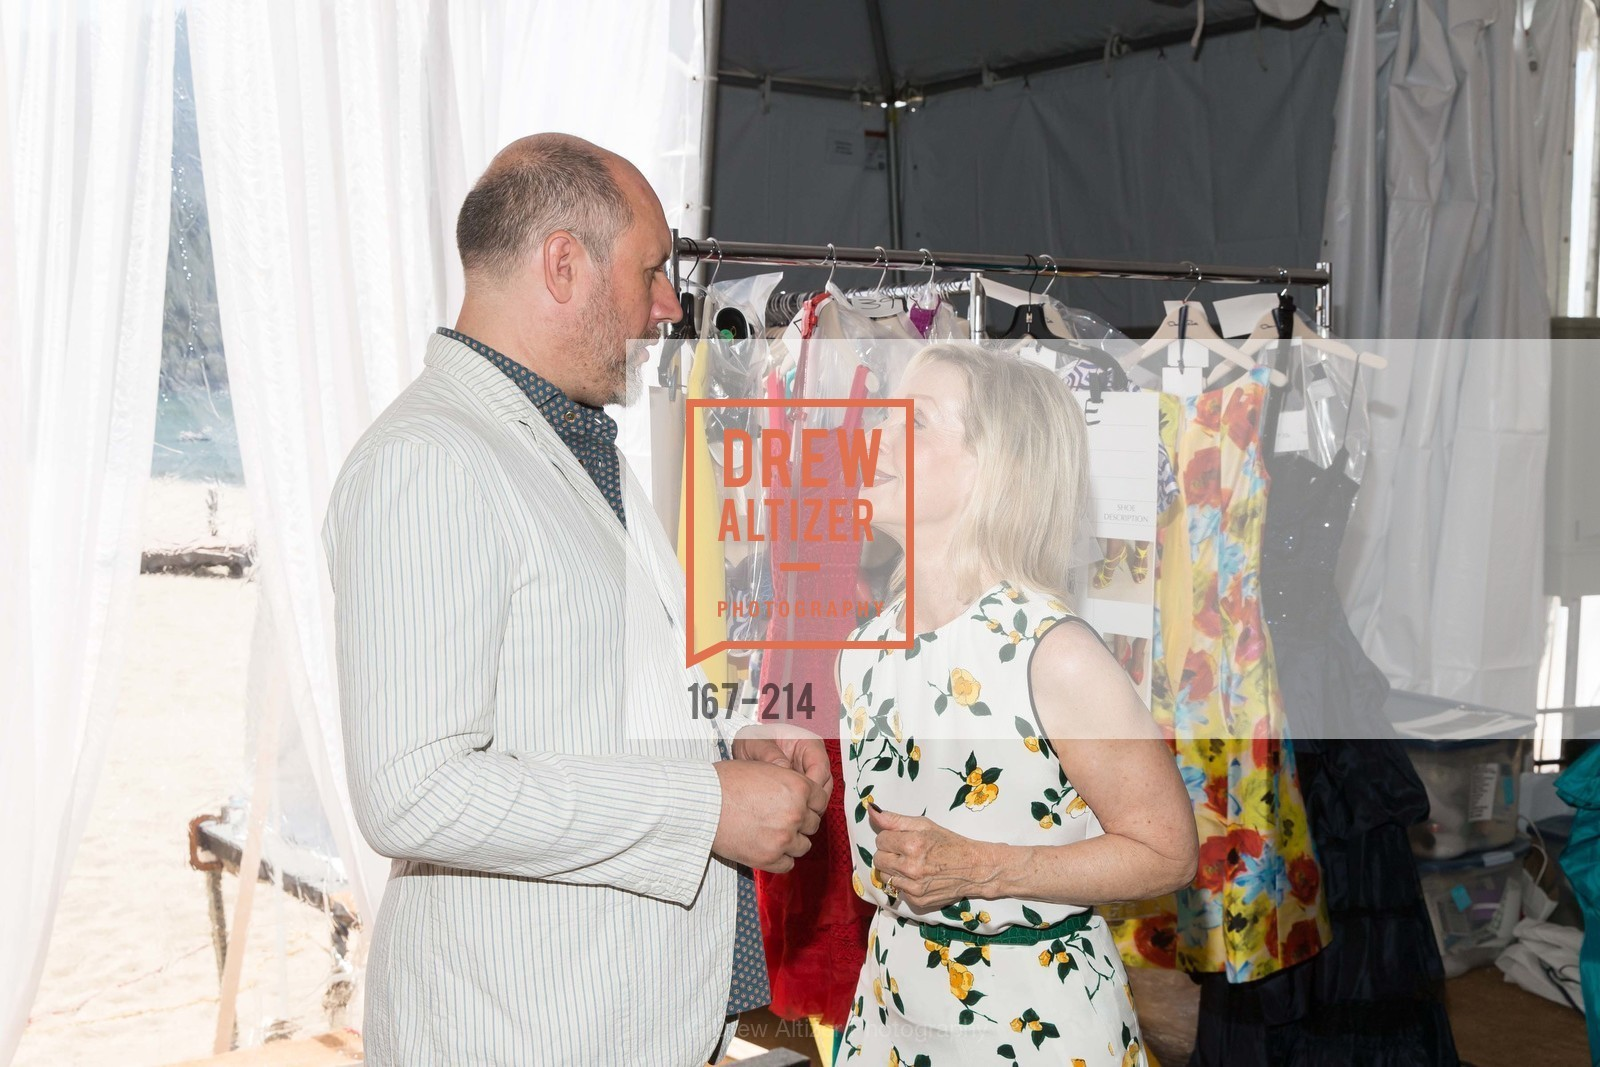 Peter Copping, Barbara Brown, Saks Fifth Avenue and The League to Save Lake Tahoe Present Fashion on the Lake, Private Residence, August 1st, 2015,Drew Altizer, Drew Altizer Photography, full-service agency, private events, San Francisco photographer, photographer california